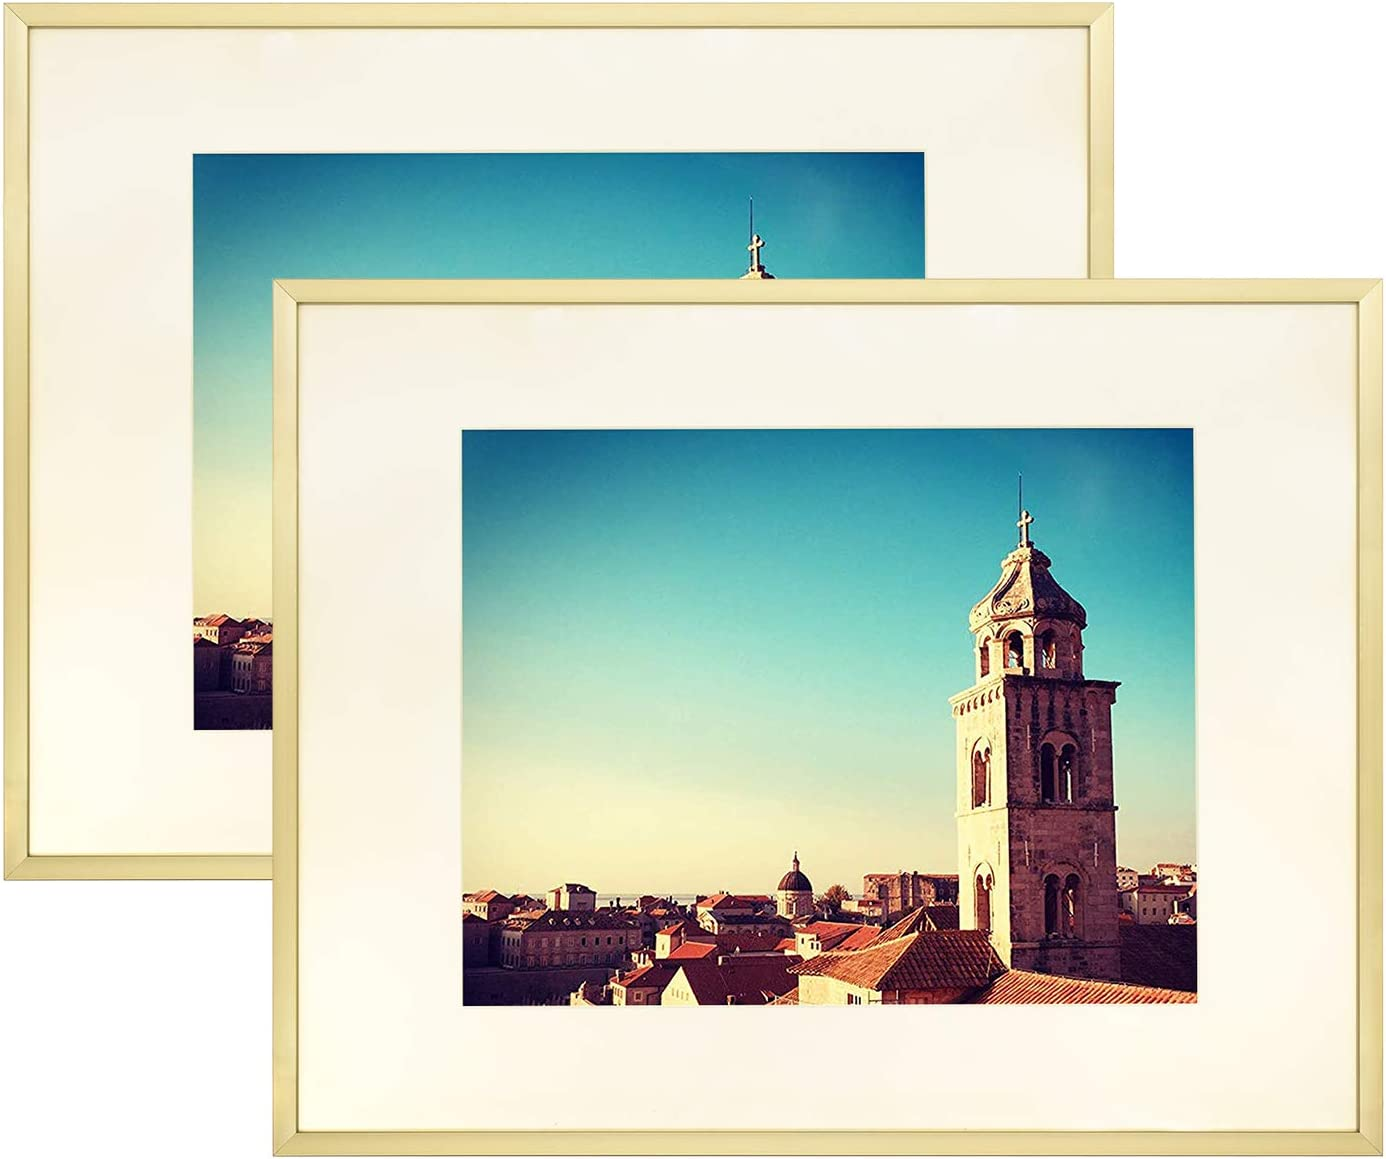 Golden State Art 11x14 Aluminum Metal Max 89% OFF Ma Color Reservation Frame with Ivory